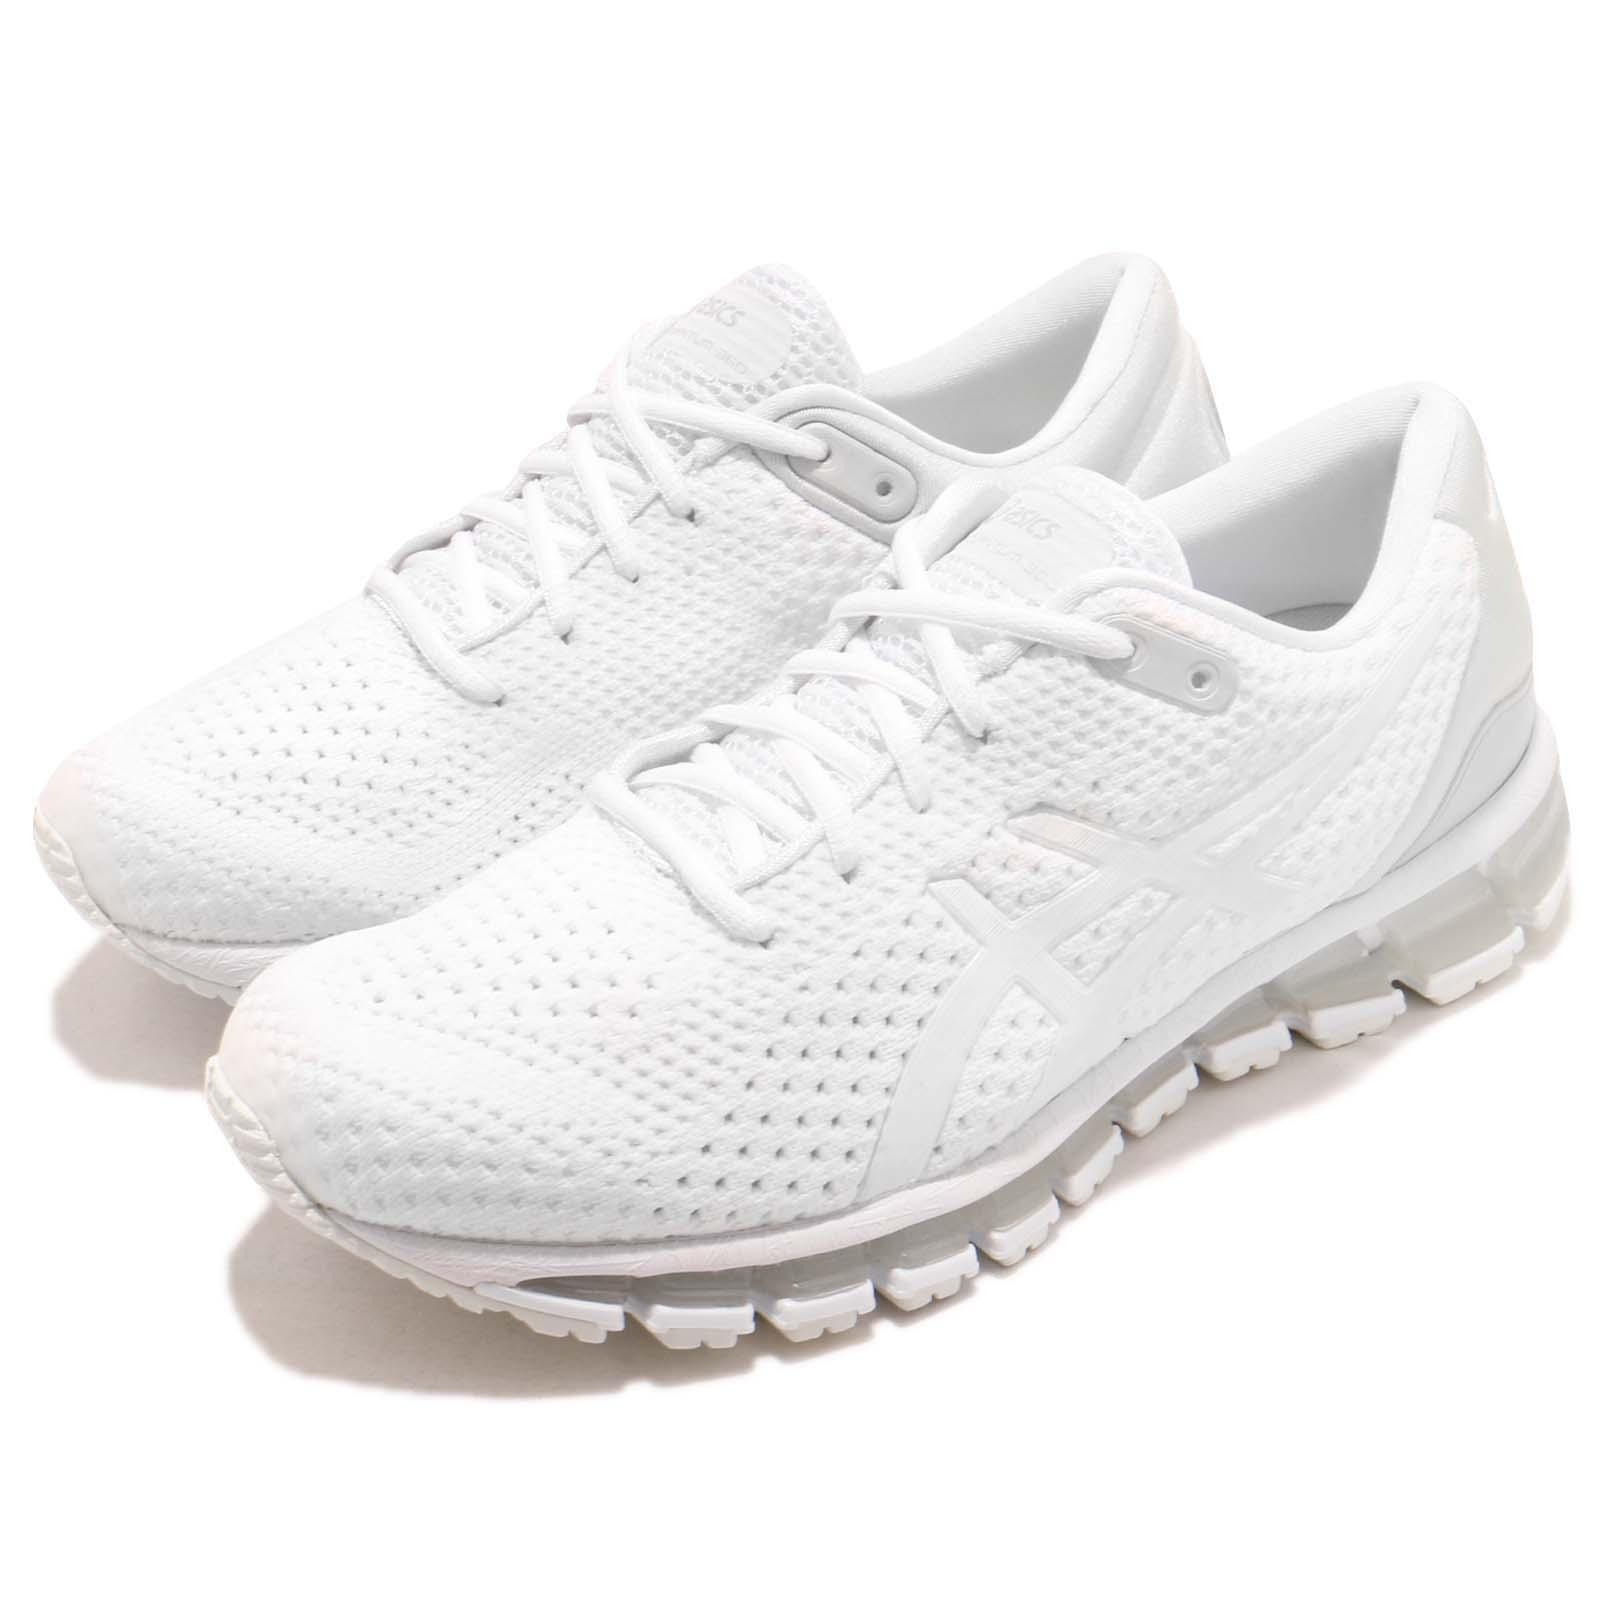 5836592064 Details about Asics Gel-Quantum 360 Knit 2 White Women Running Training  Shoe Sneaker T890N-100